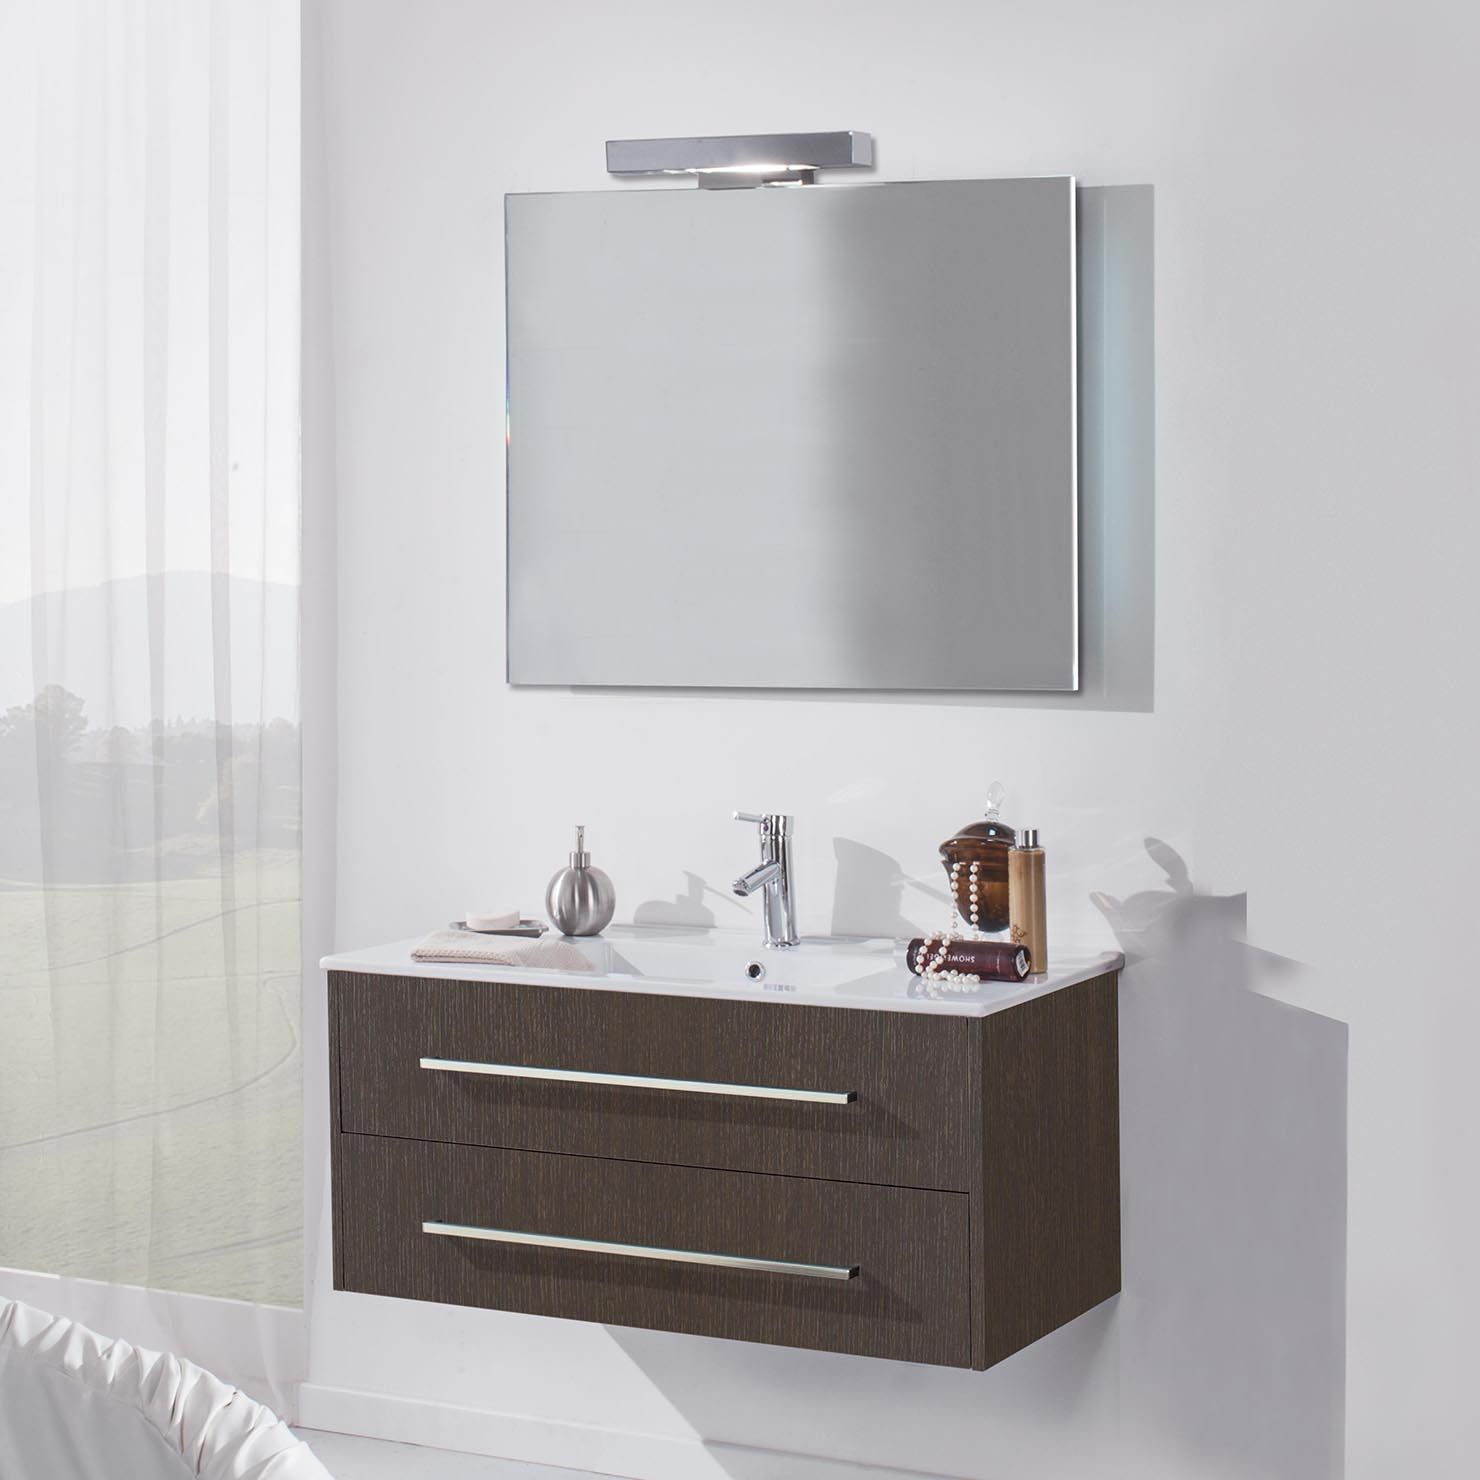 TFT HW Bathroom Basin with Two Drawer Cabinet & Mirror, Wenge ...